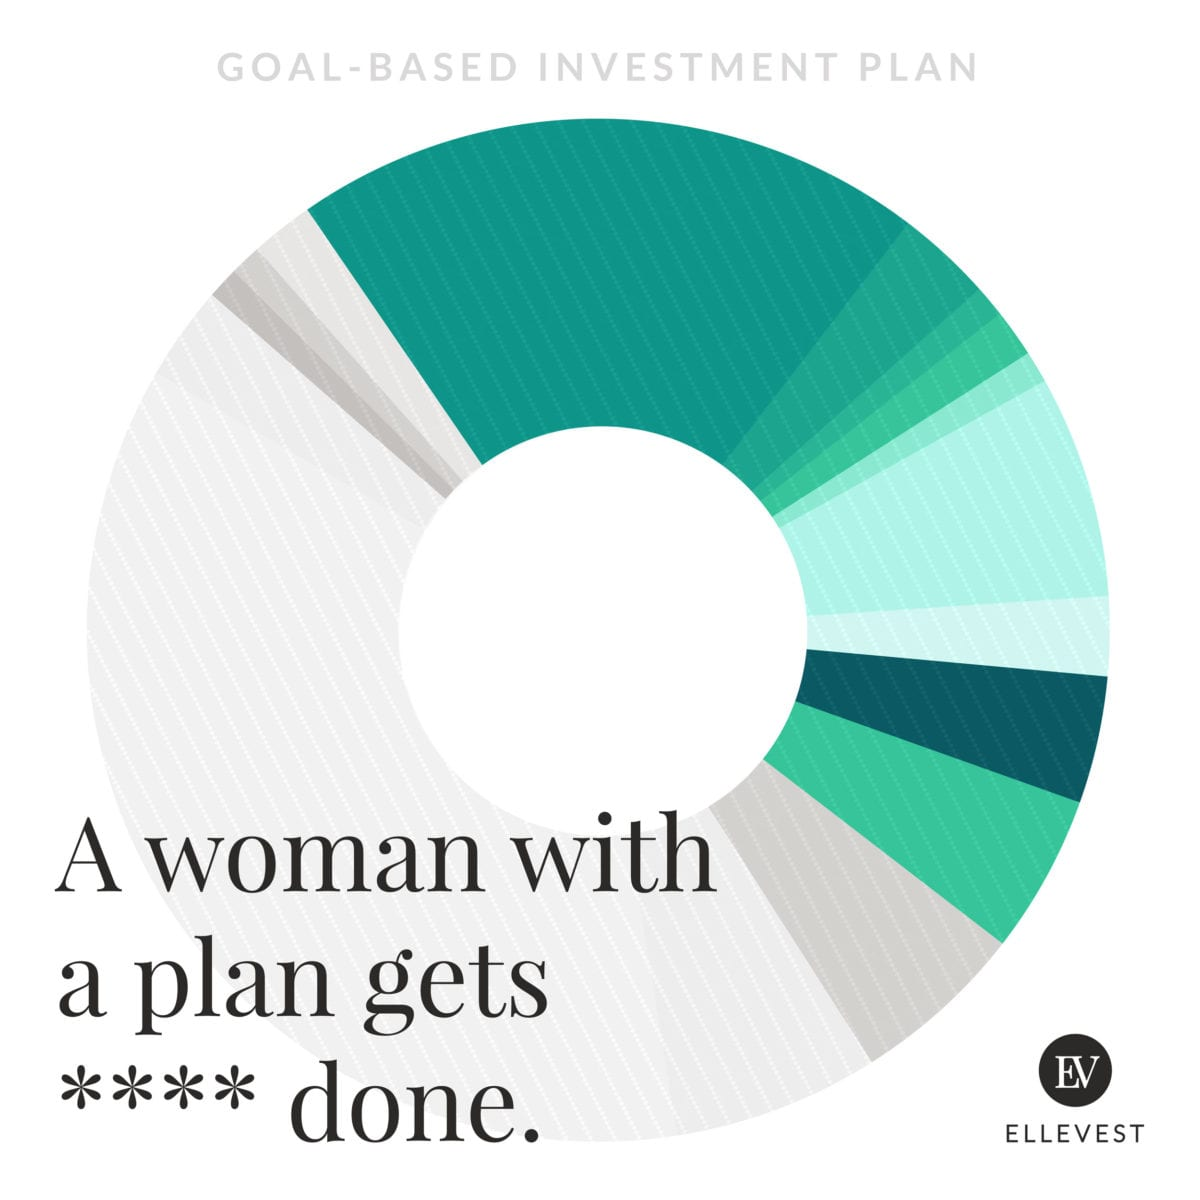 Step forward in your adulting stage and start a goal-based investment plan in Ellevest